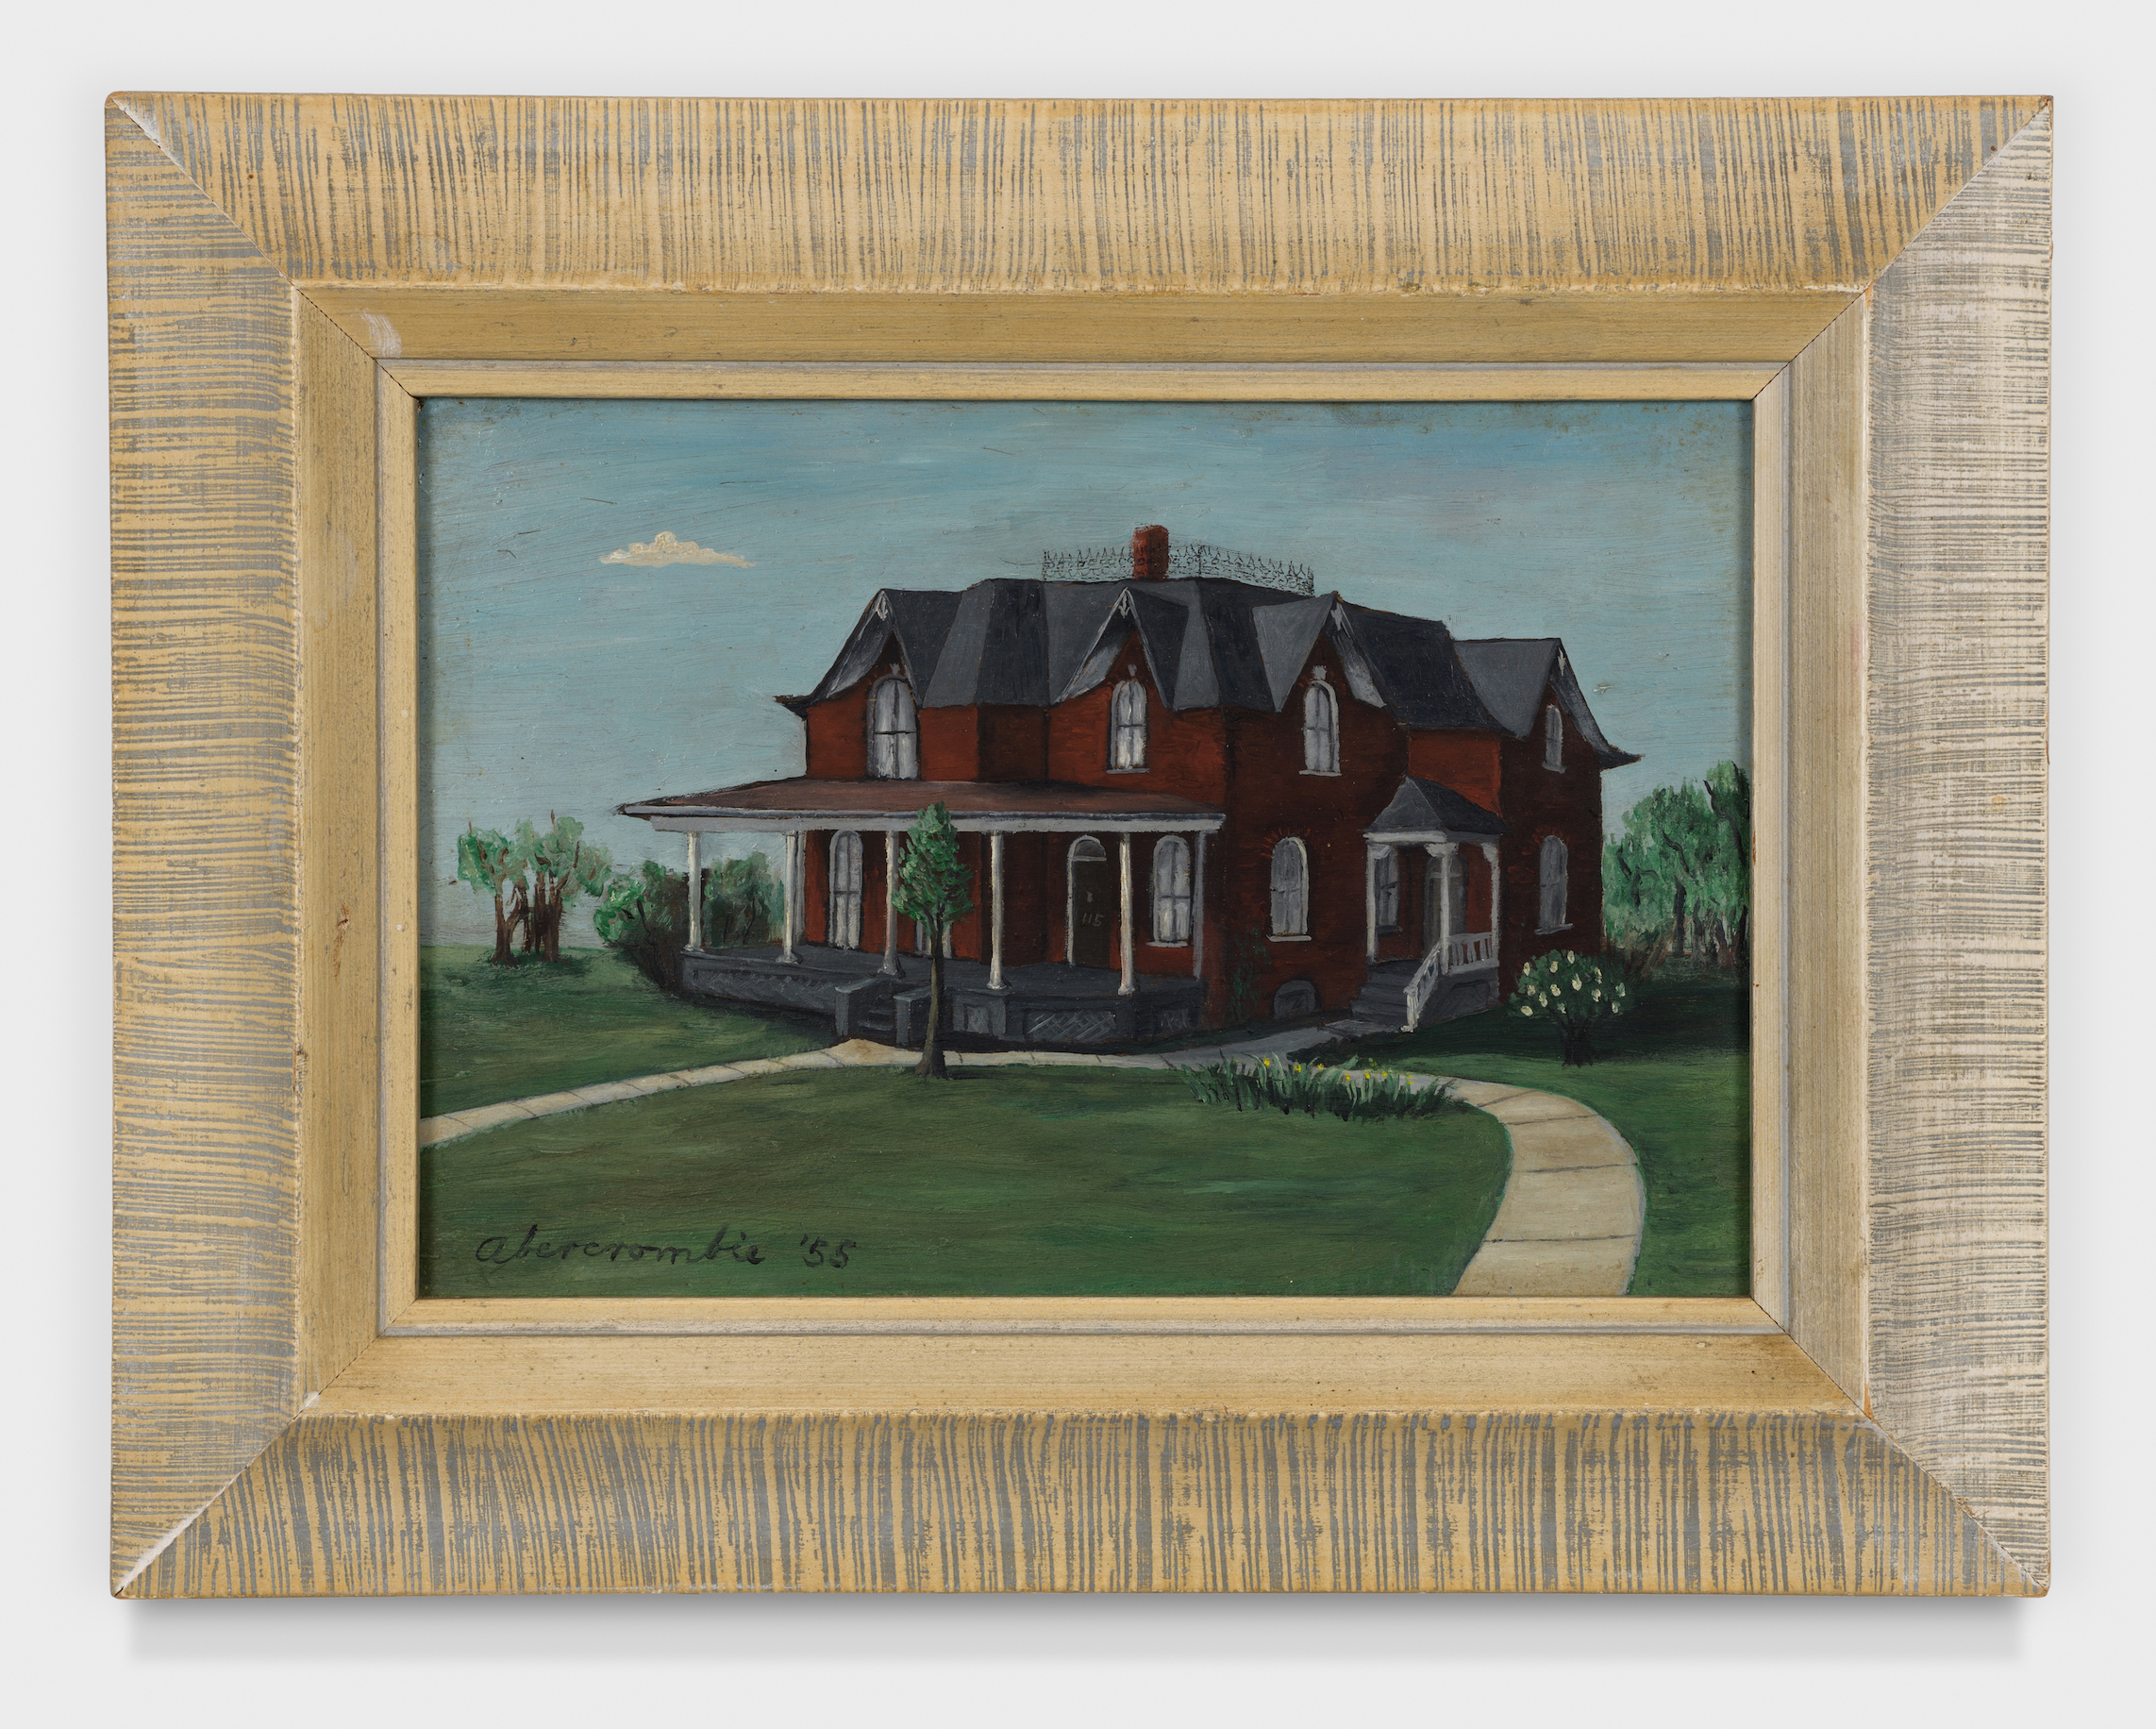 House of Seven Gables , 1955, Oil on board, 5 × 7 inches (unframed); 8 × 10 inches (framed). Carlberg Collection.